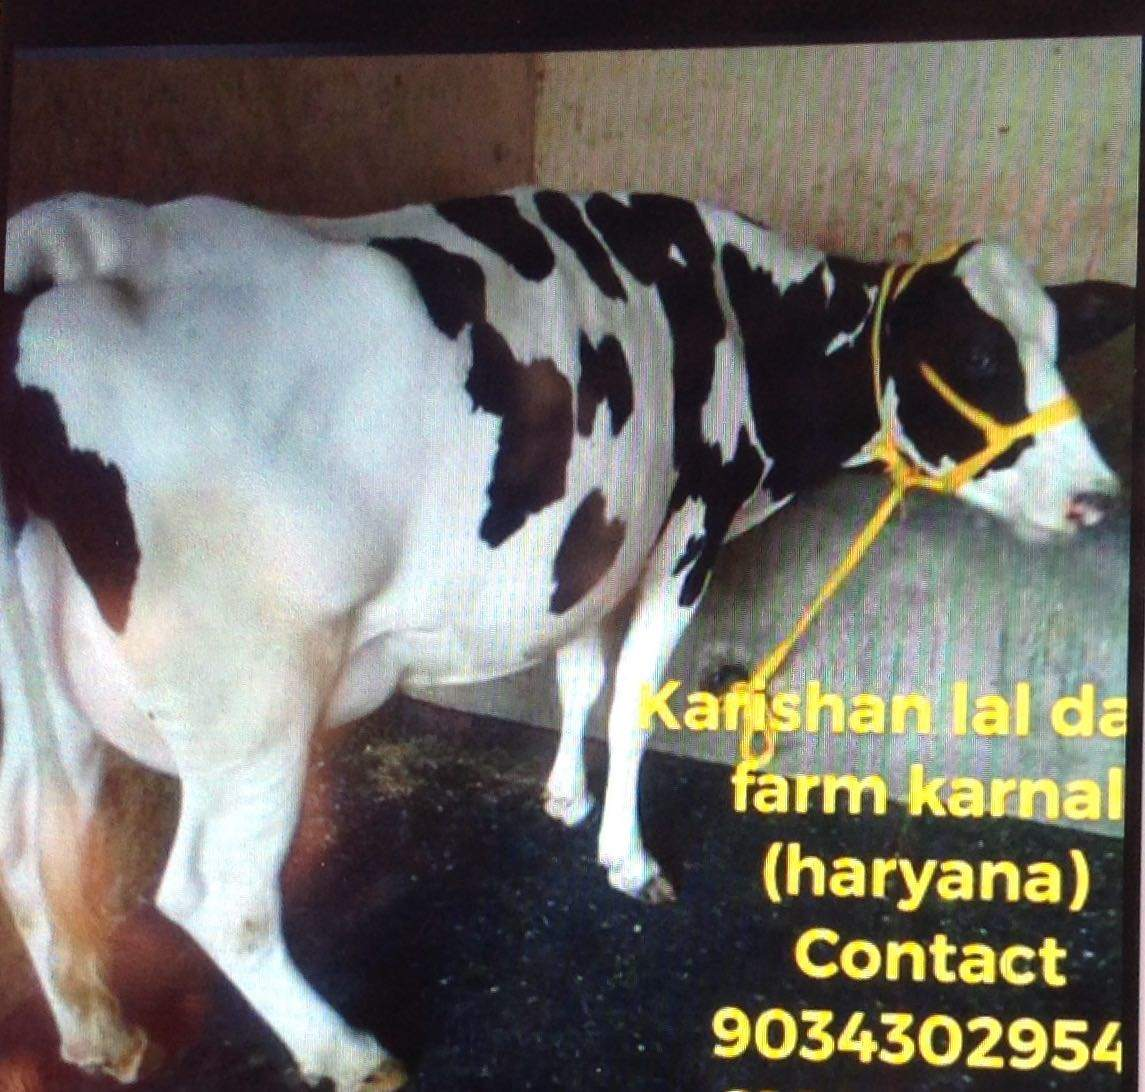 Top 10 Cow Suppliers in Hyderabad - Best Cow Dealers - Justdial